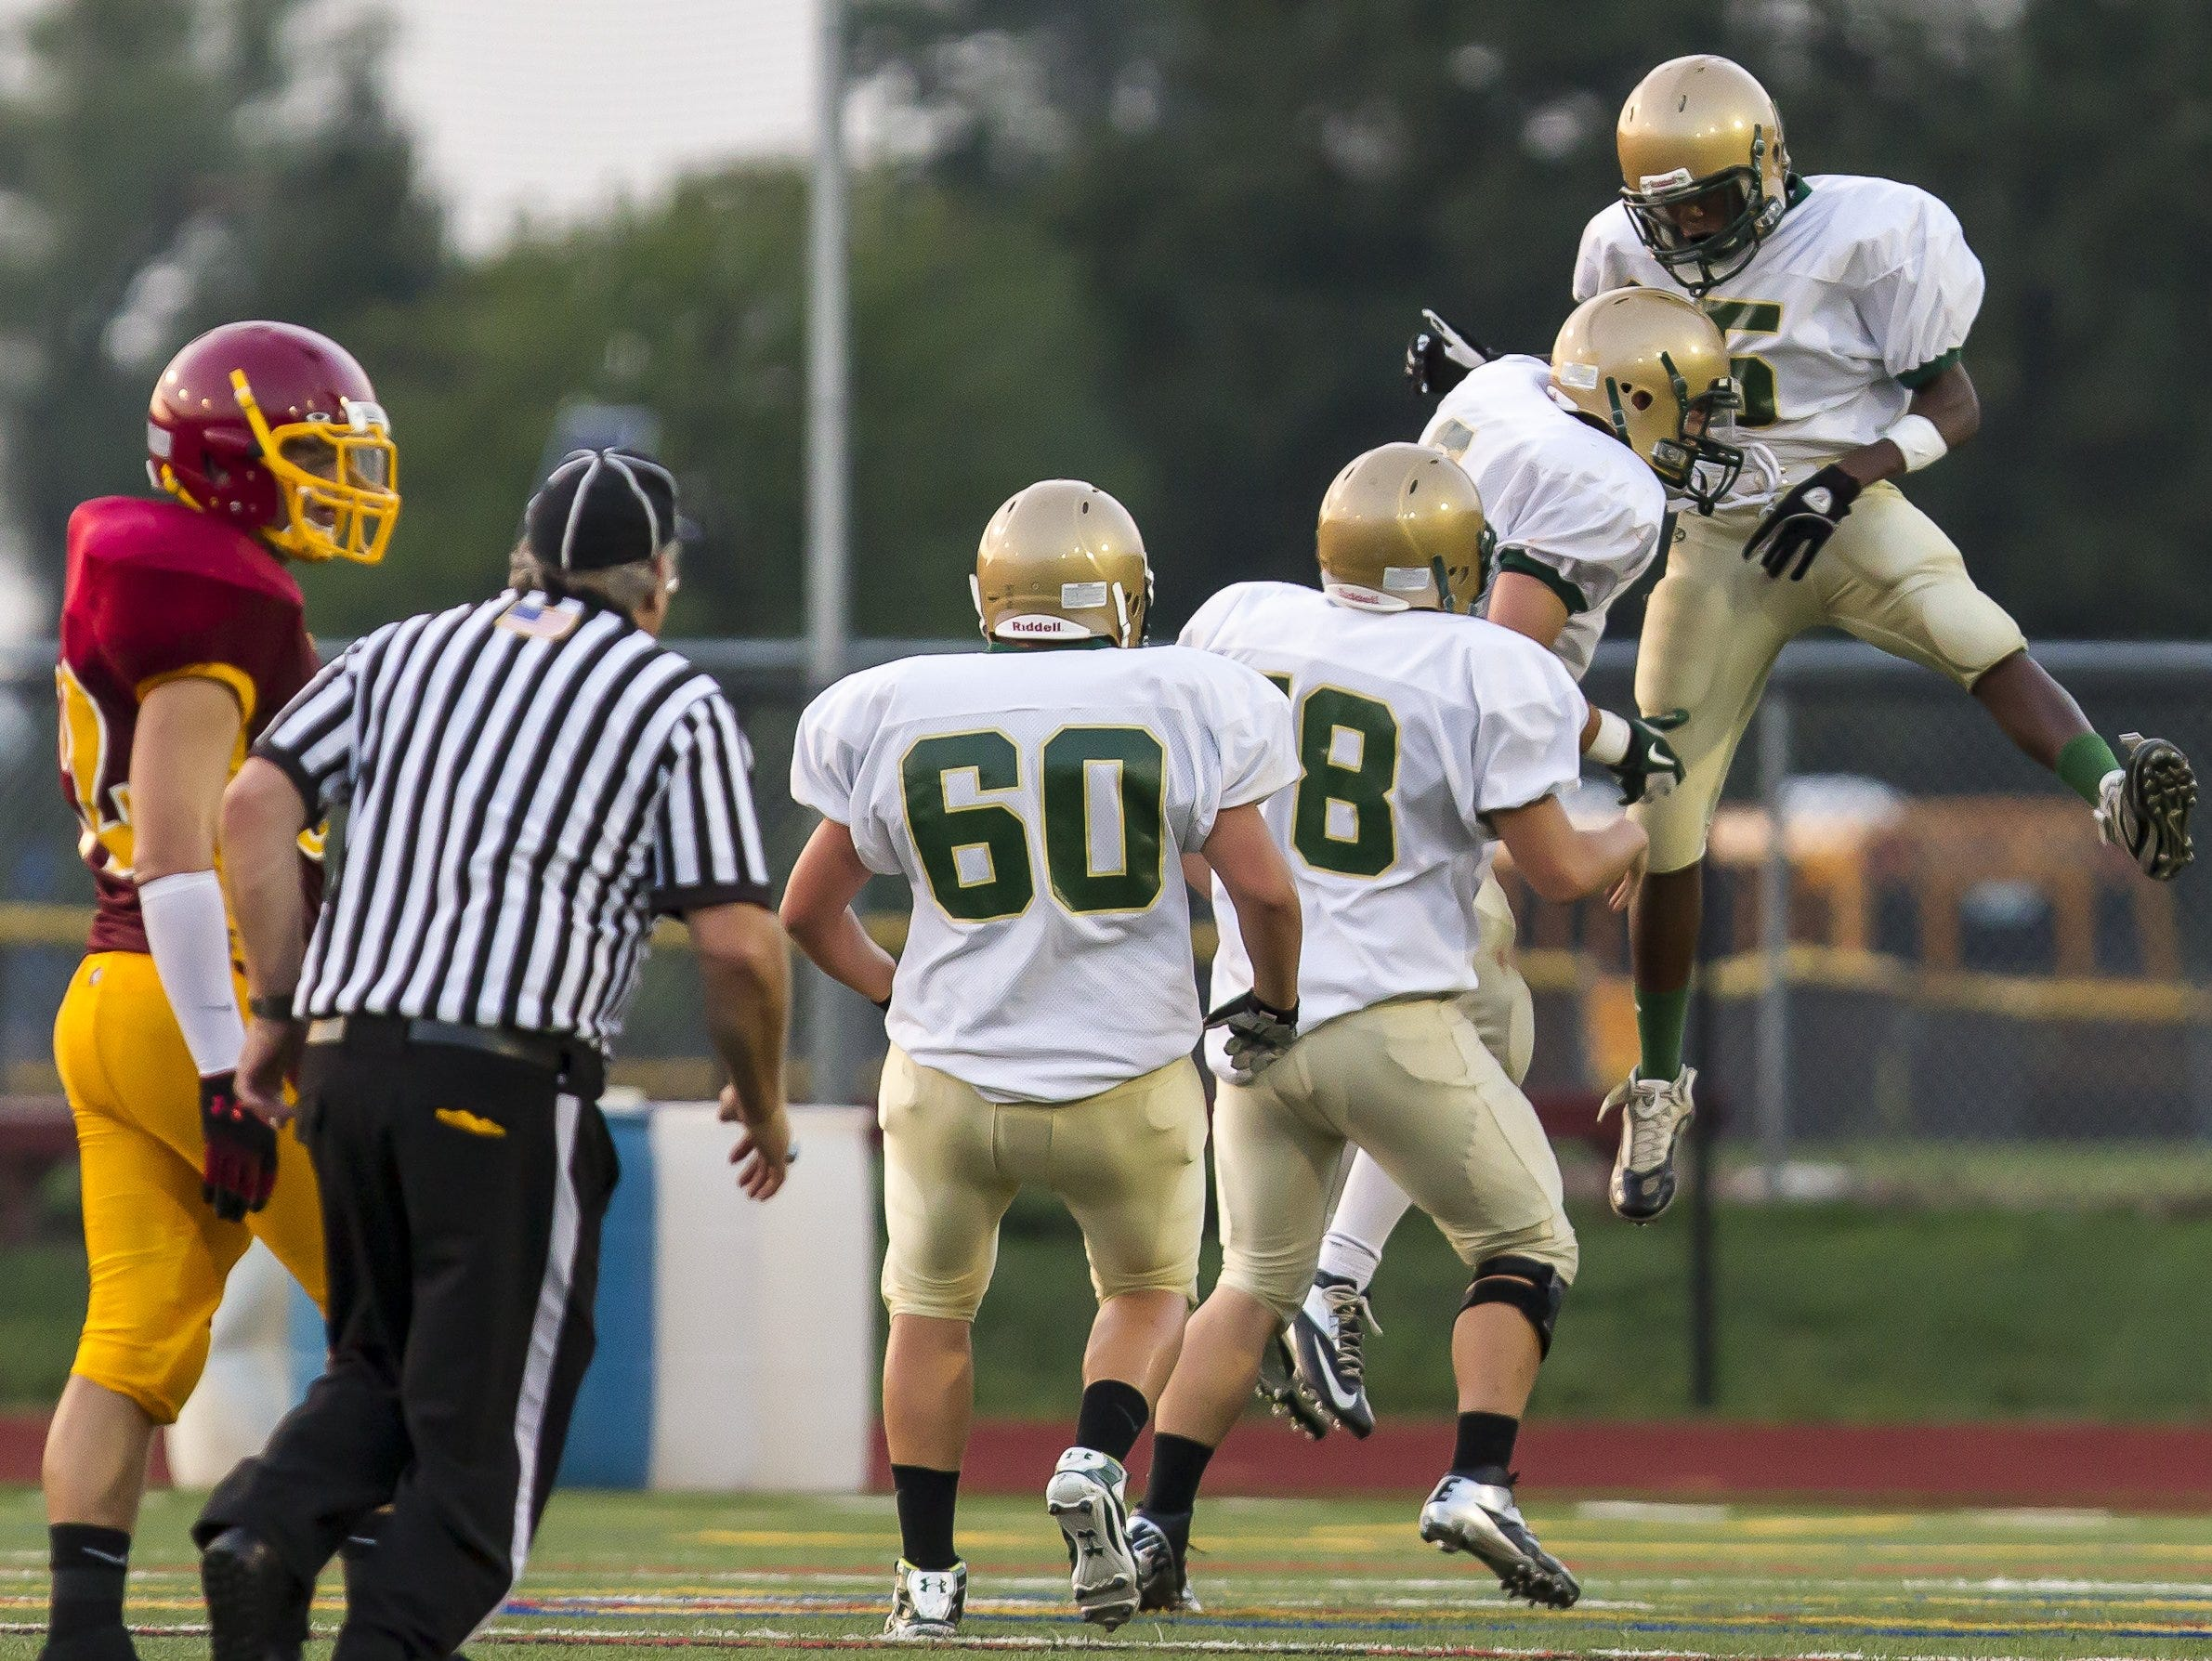 In 2012, Vestal's players celebrate a big play during the season opener at Ithaca against the Little Red.